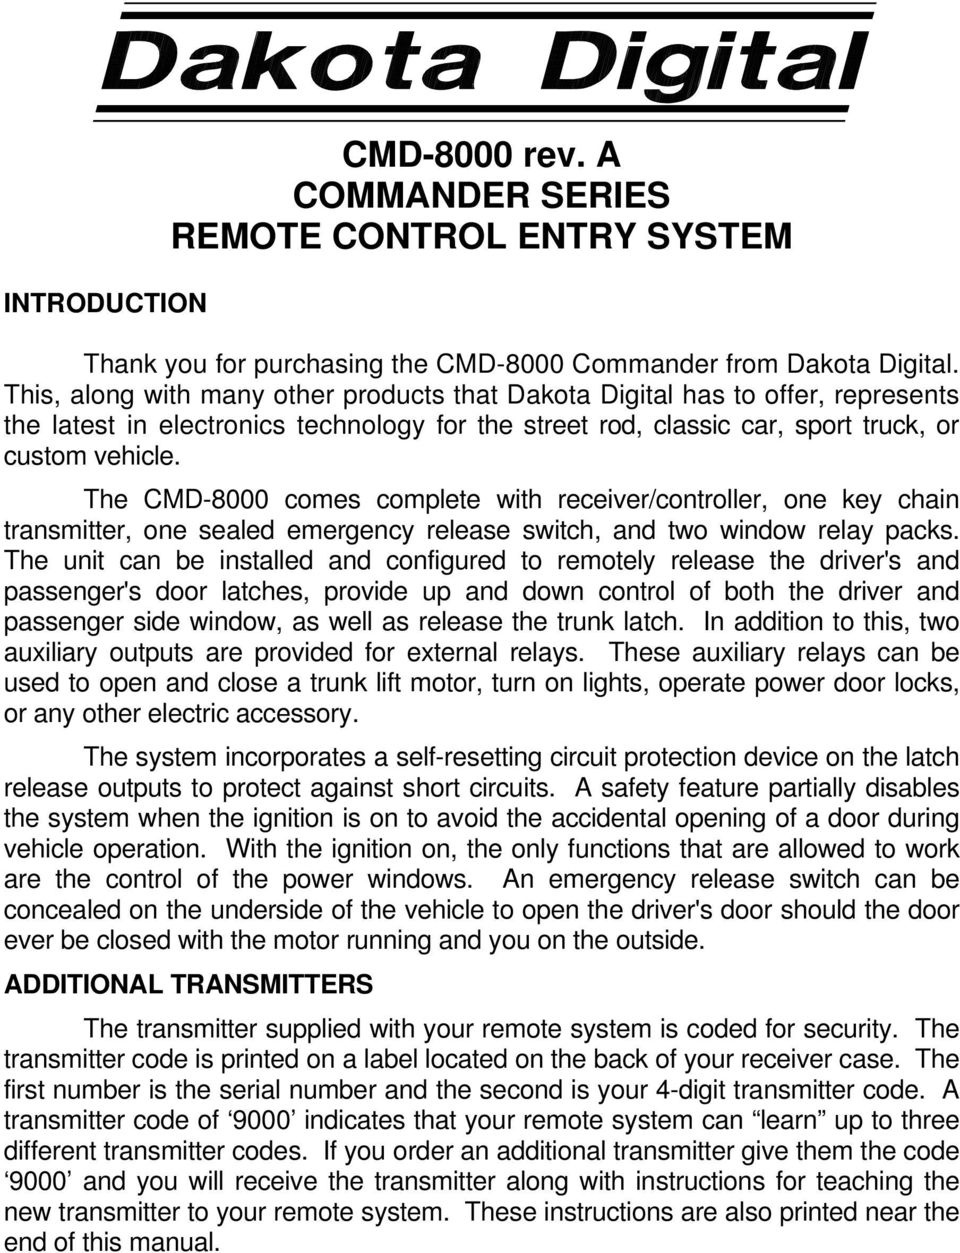 The CMD-8000 comes complete with receiver/controller, one key chain transmitter, one sealed emergency release switch, and two window relay packs.